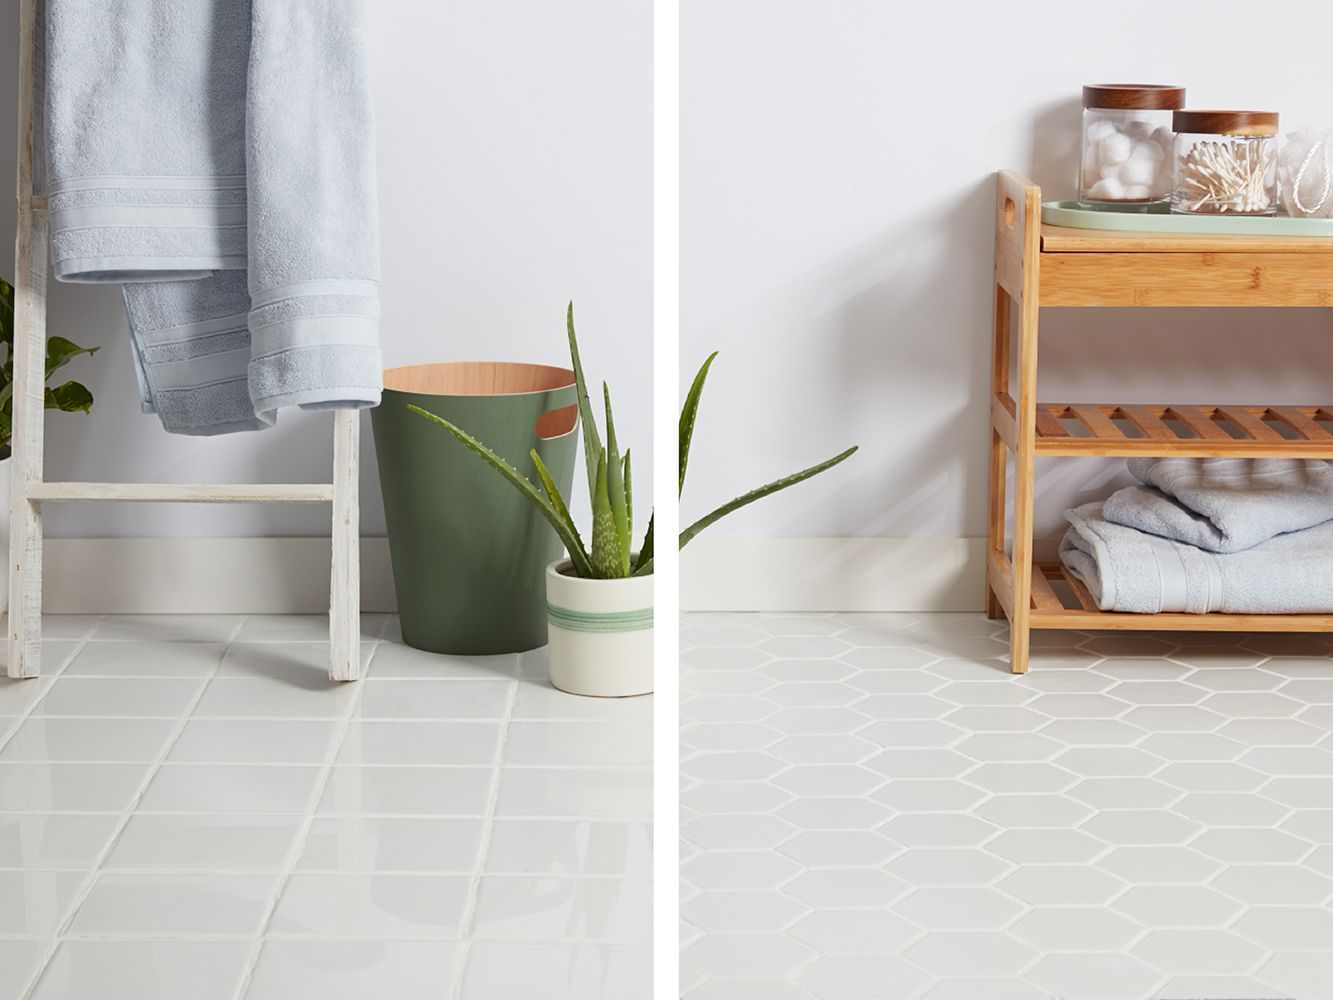 Tiles for office flooring? Why choose cost effective ceramic tiles as an option.